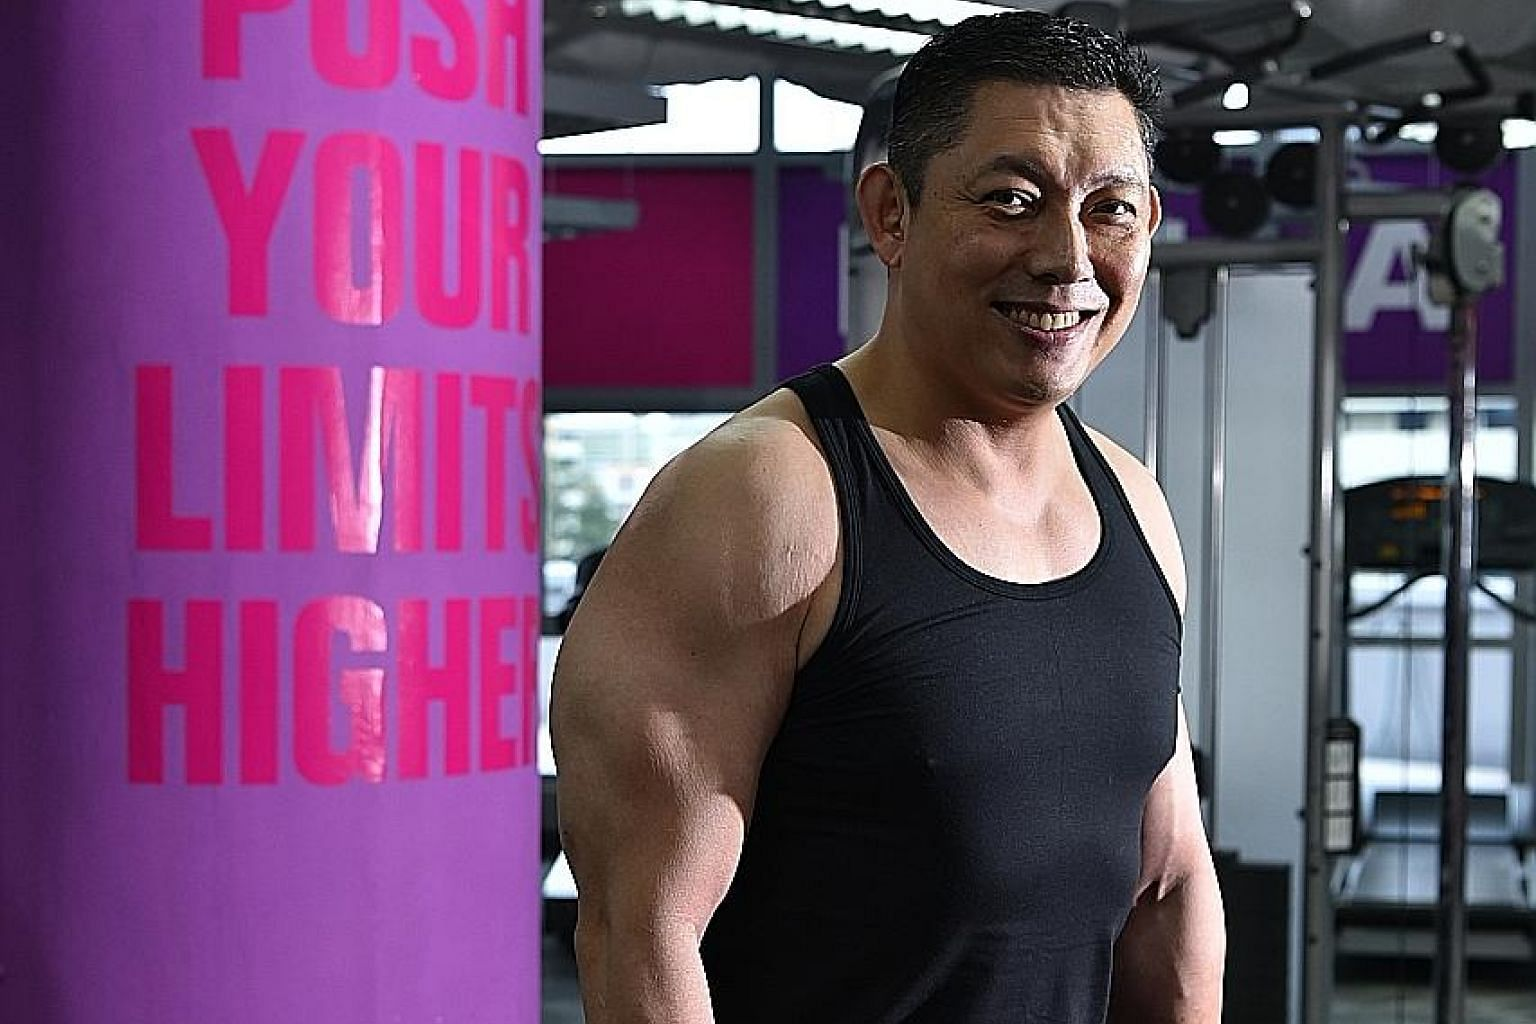 Dr Chiam Tut Fu says the gym is his playground, where he can choose from different exercises, and train at different tempos.